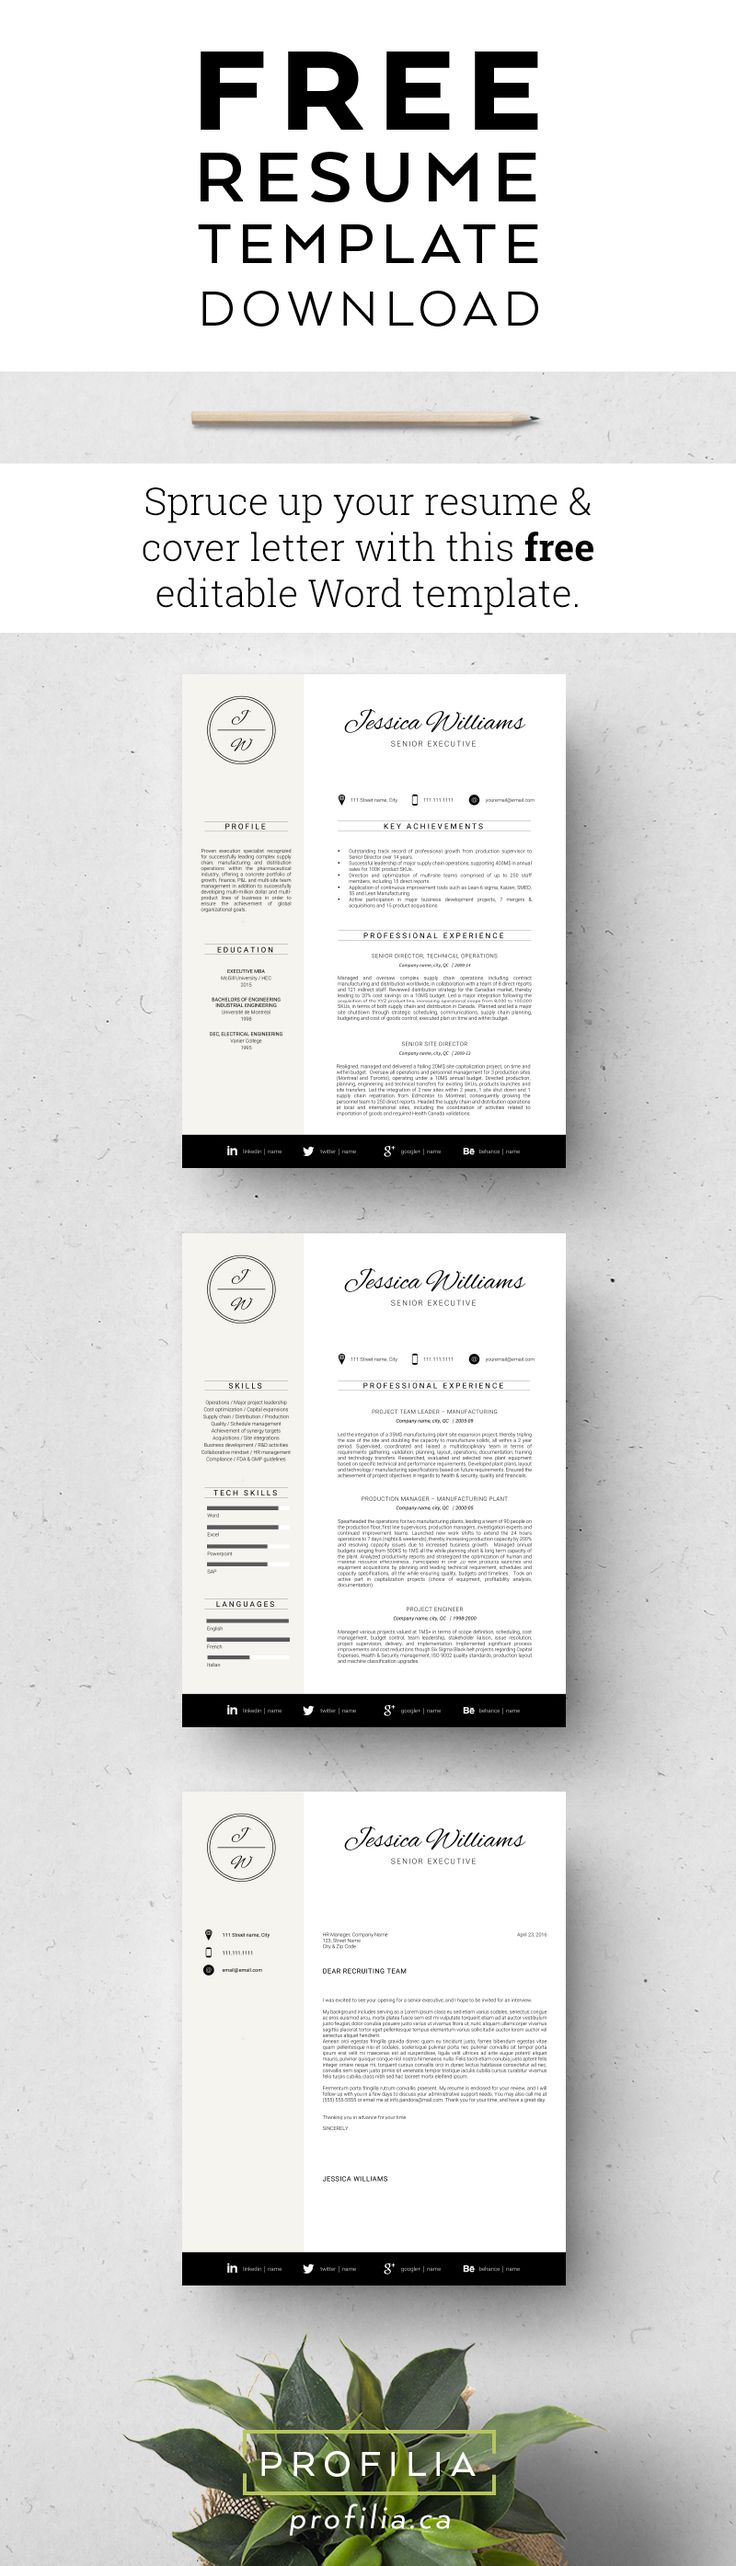 best 25 job cover letter ideas on pinterest cover letter example writing a cv and cover letter for job - Cover Letter Templace